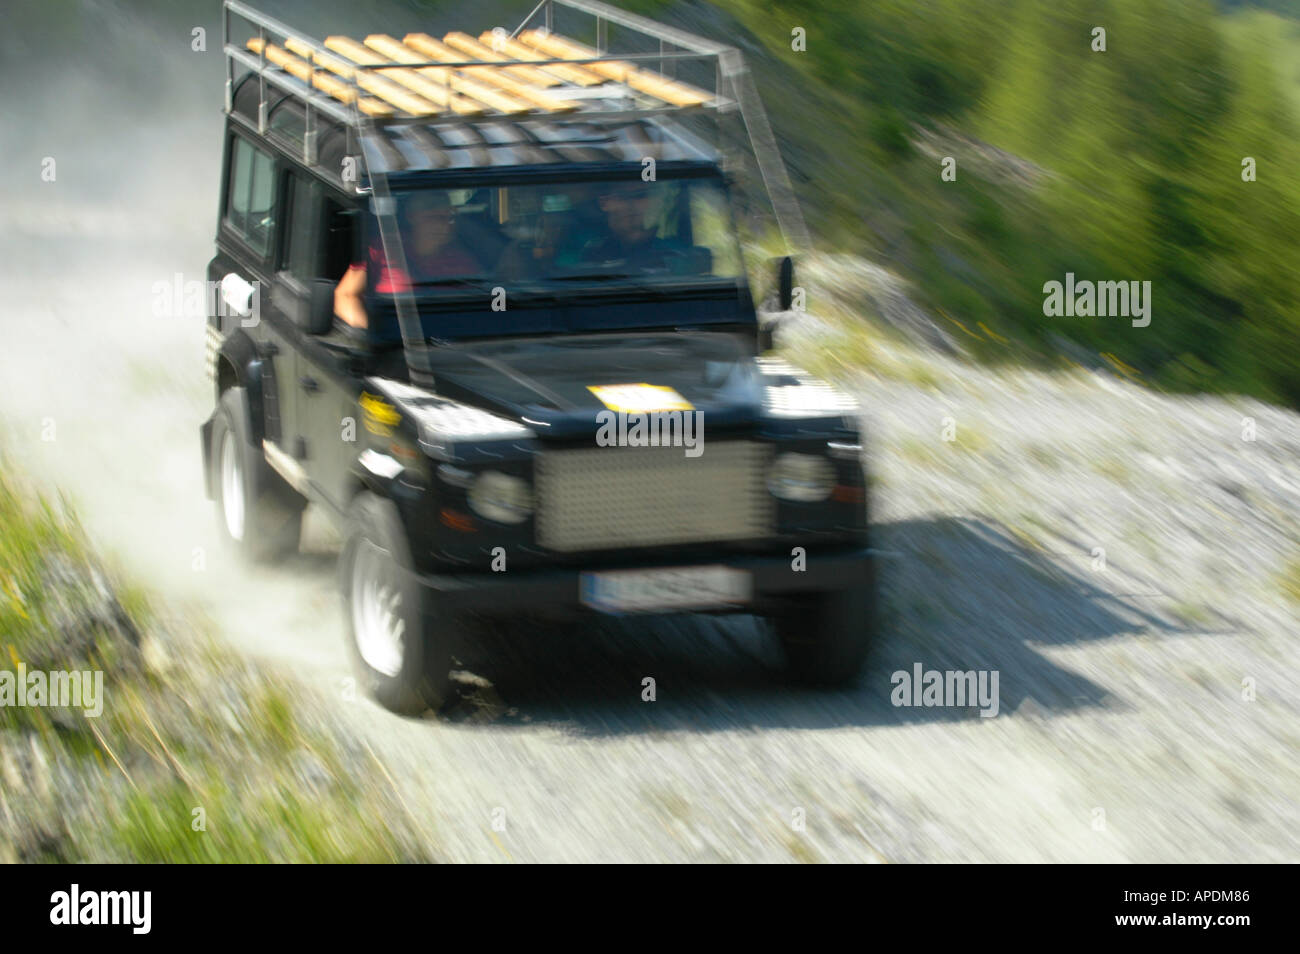 hight resolution of land rover defender 110 station wagon roofrack stock image